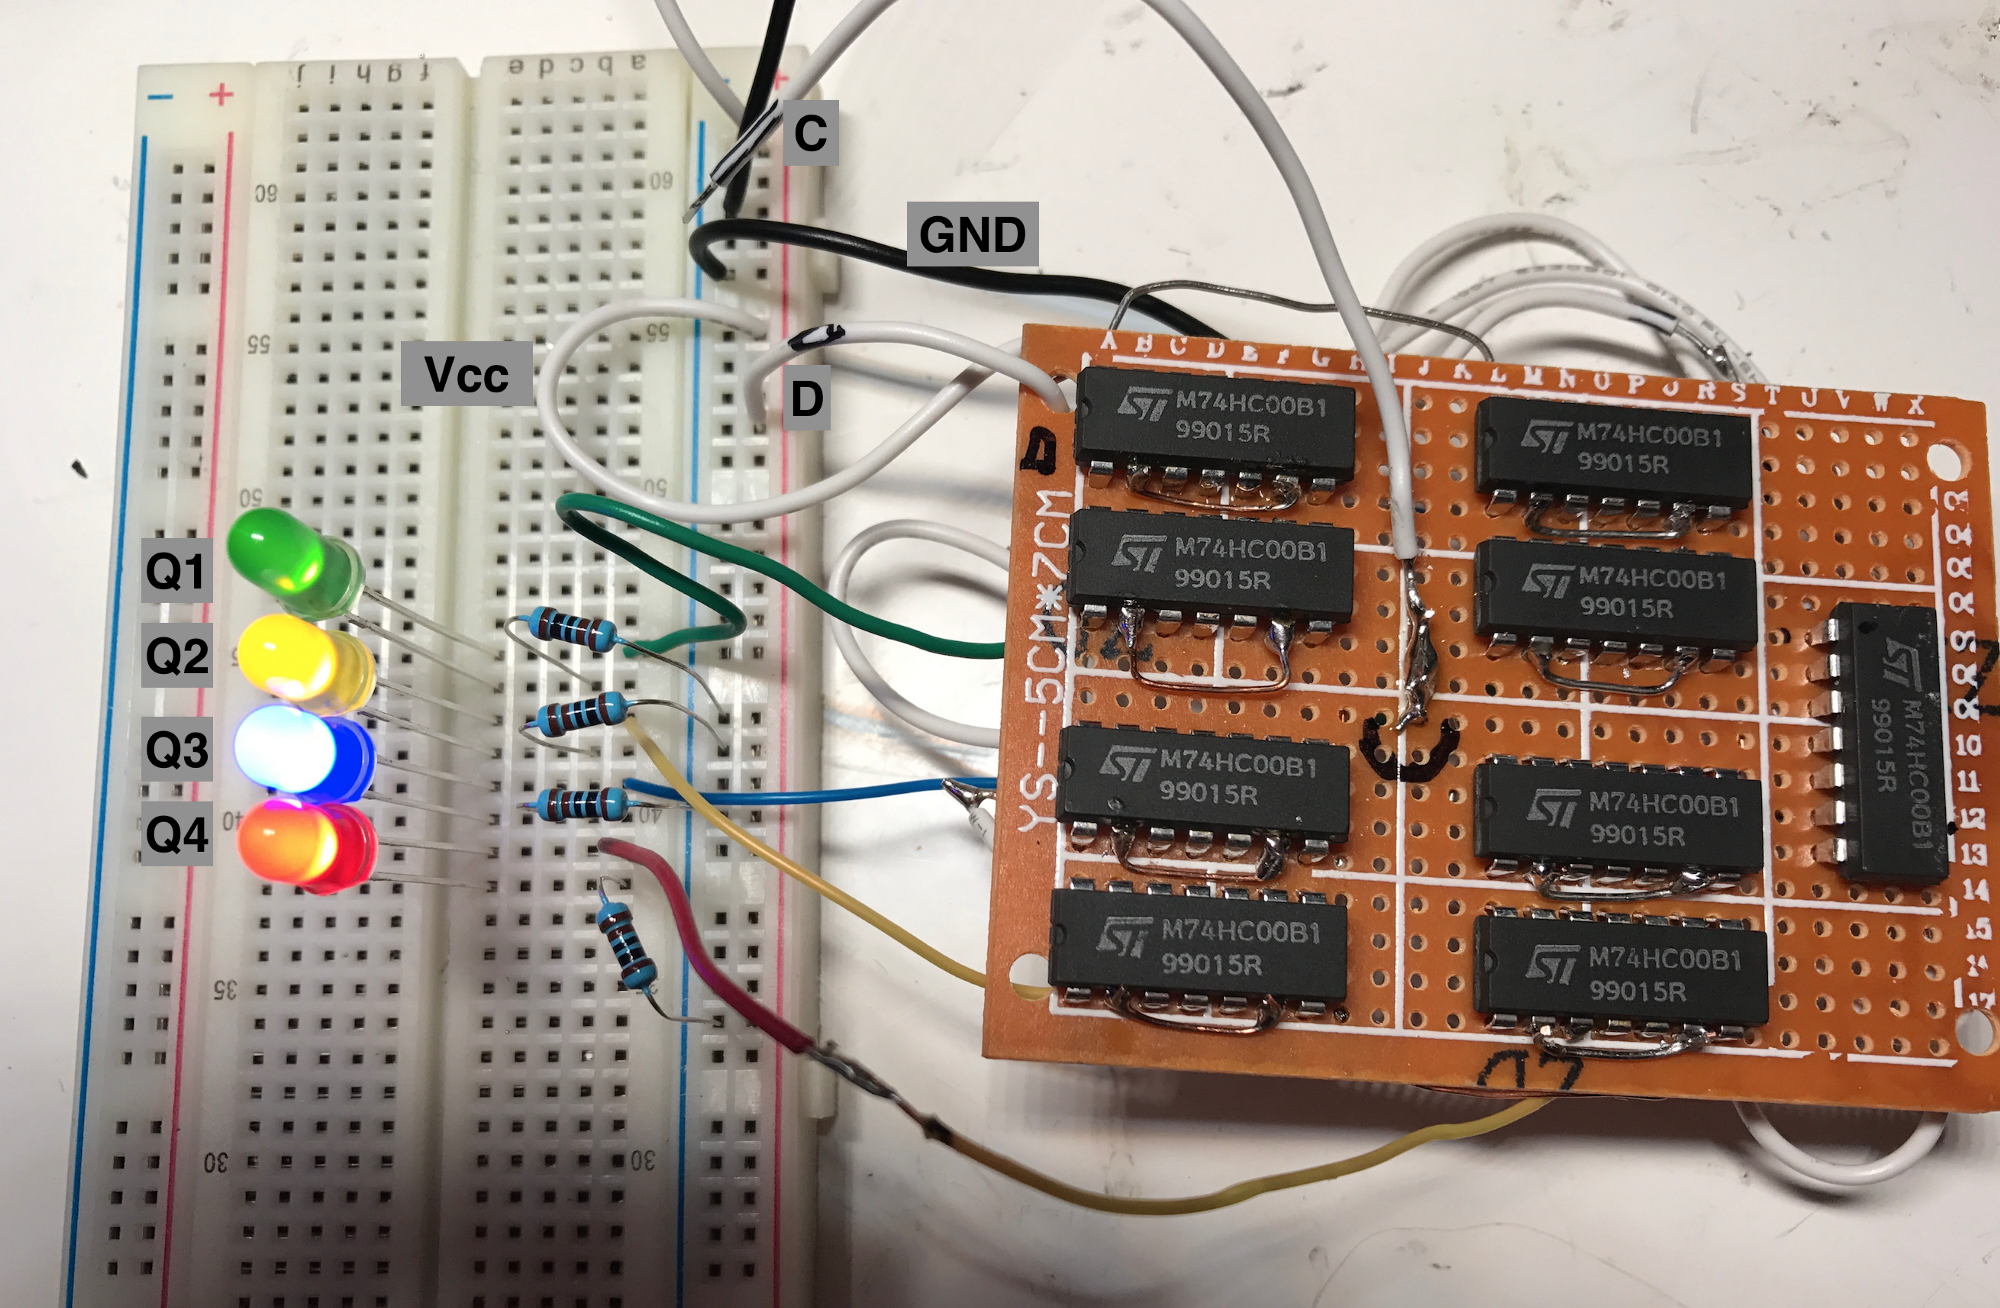 Building A 4 Bit Shift Register From 7400 Nand Gates For Gpio Output 7 Segment Decoder Logic Diagram Testing By Manually Plugging In The Clock And Data Lines Into Power Ground Seems To On Falling Edge